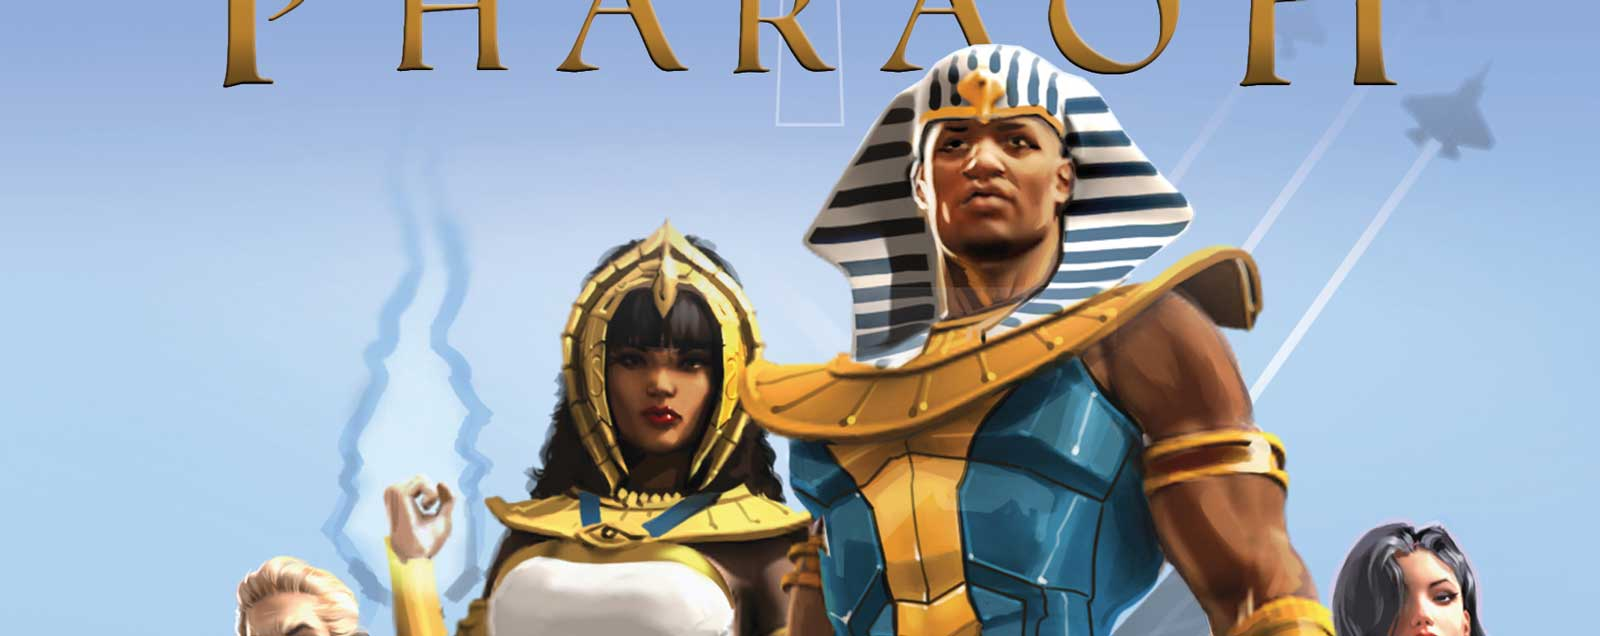 Spirit of the Pharaoh cover SNIP